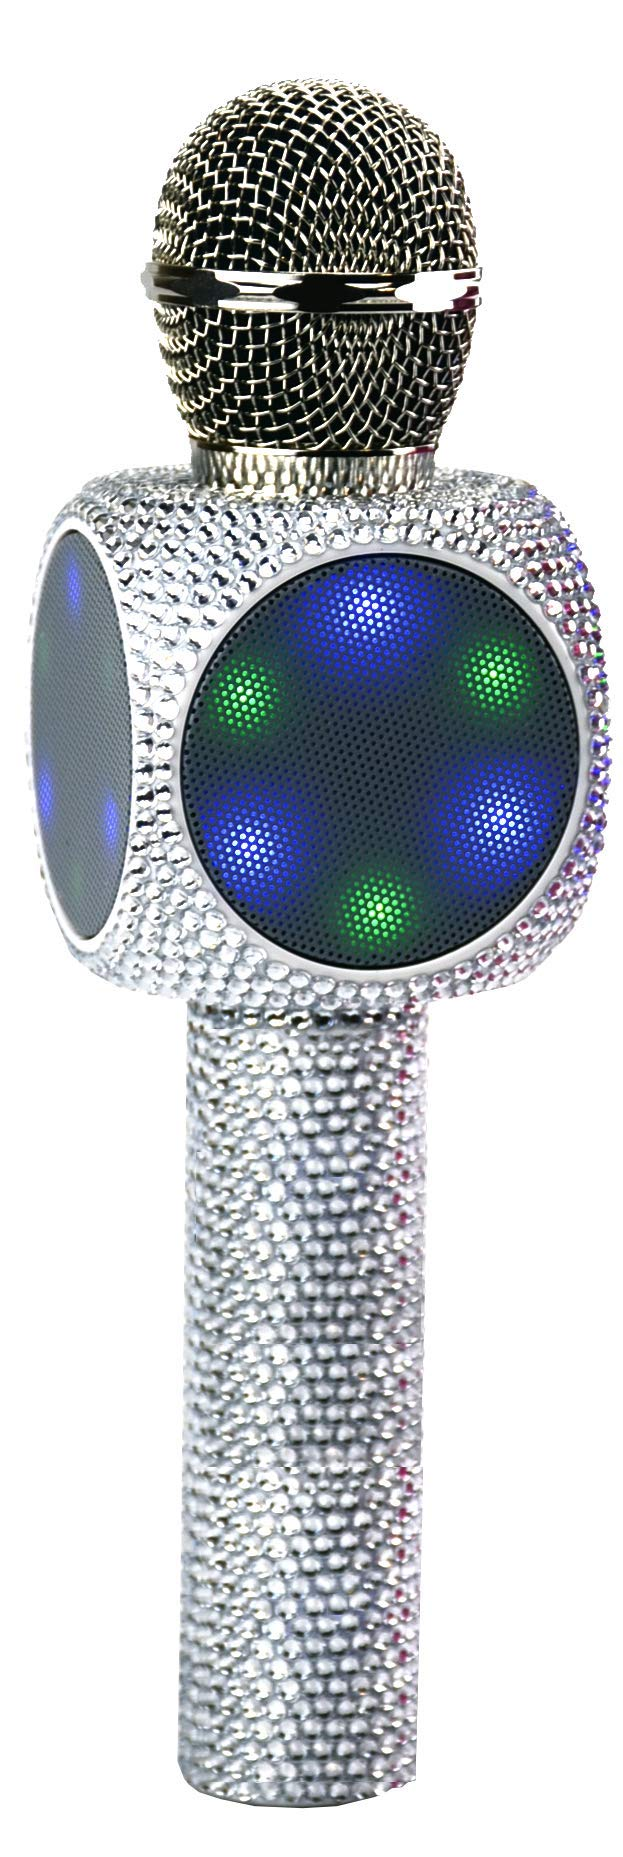 Wireless Express Sing-Along Bling Bluetooth Karaoke Microphone and Bluetooth Stereo Speaker All-in-One by Wireless Express (Image #2)